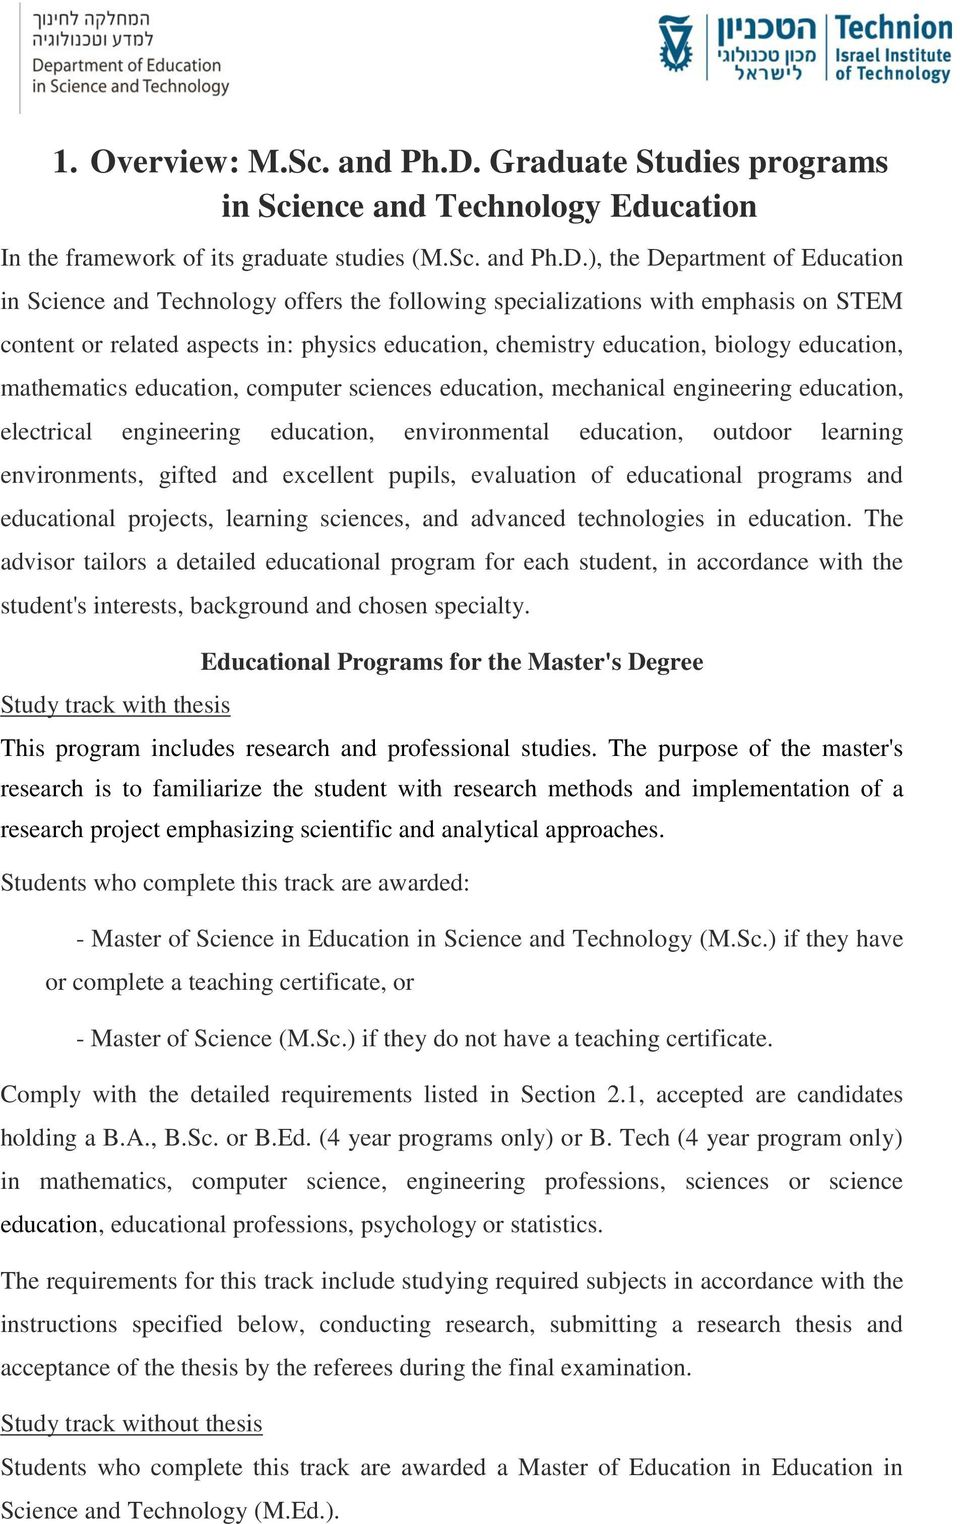 ), the Department of Education in Science and Technology offers the following specializations with emphasis on STEM content or related aspects in: physics education, chemistry education, biology